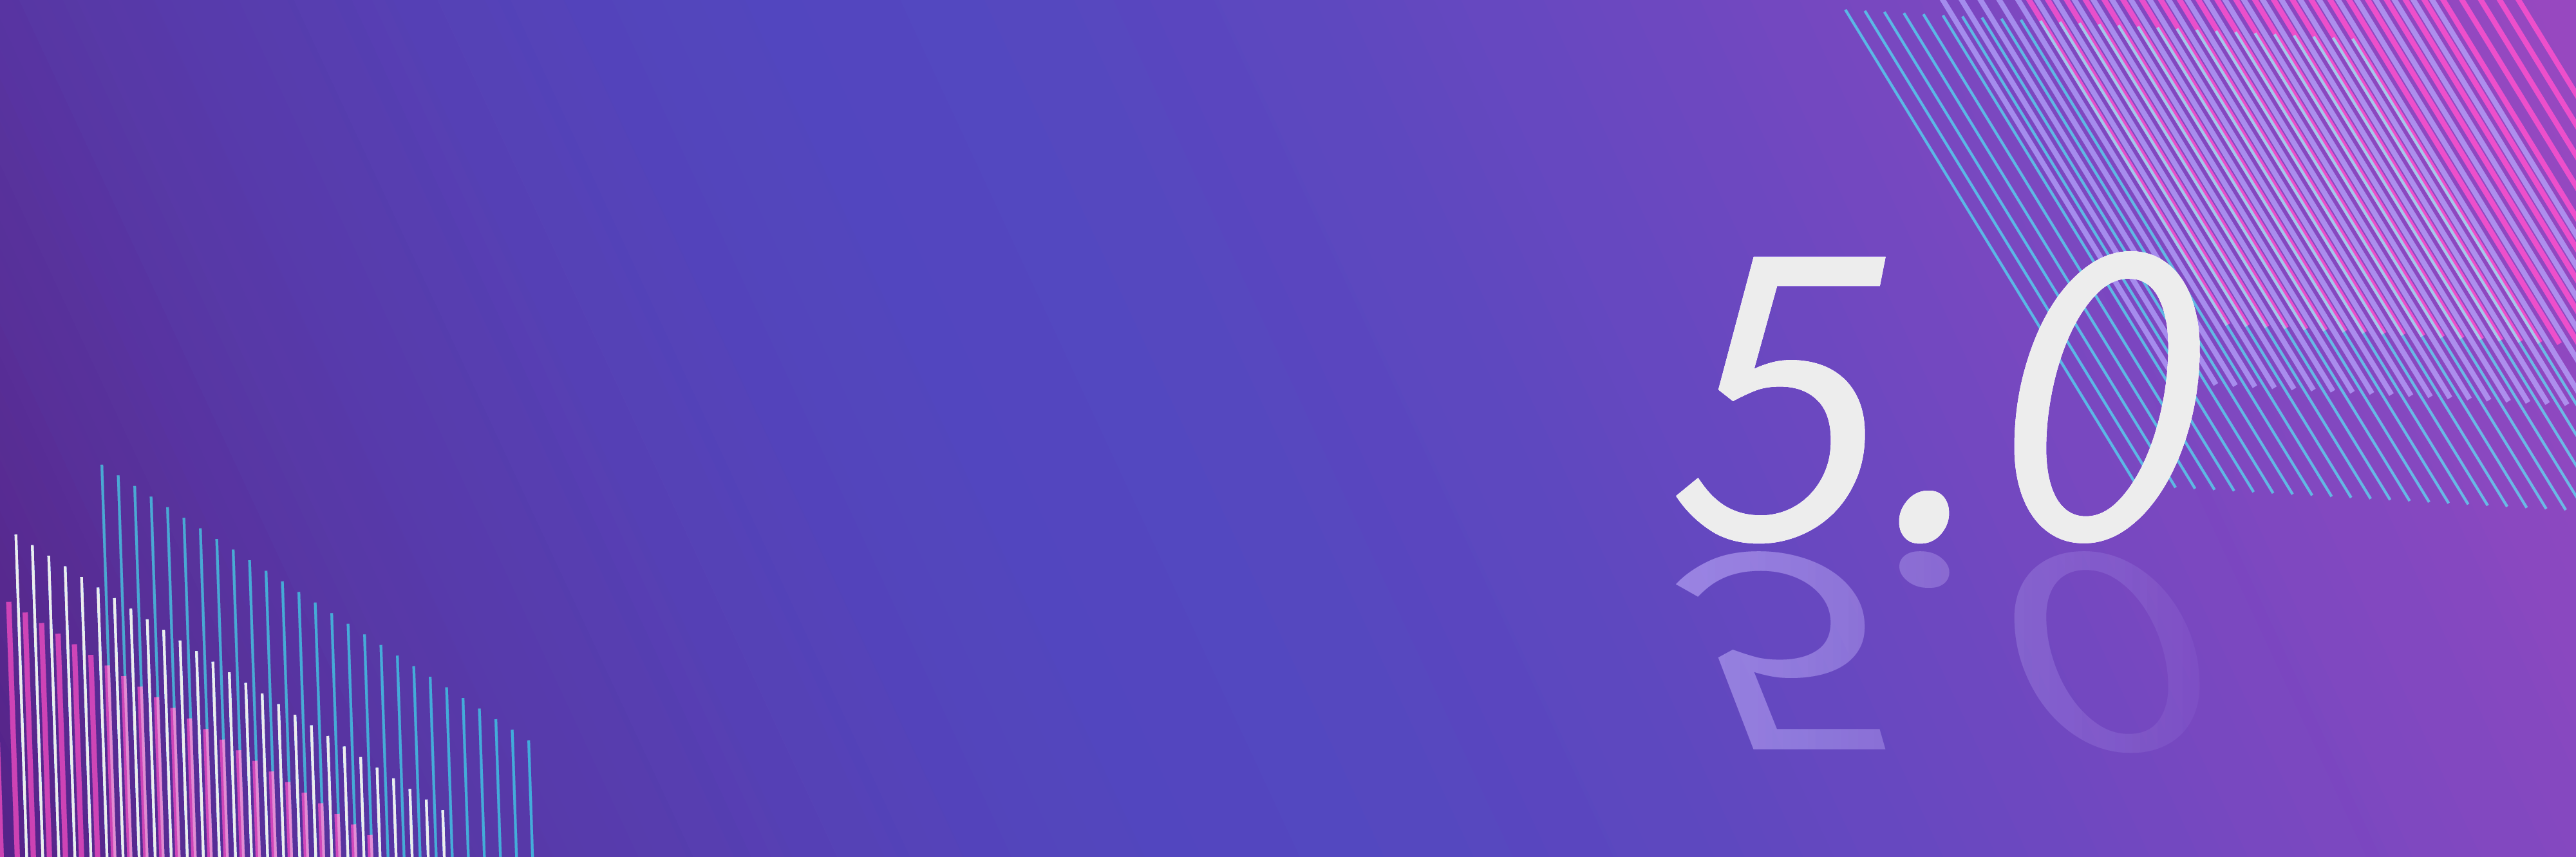 Dataiku DSS 5.0 product release banner